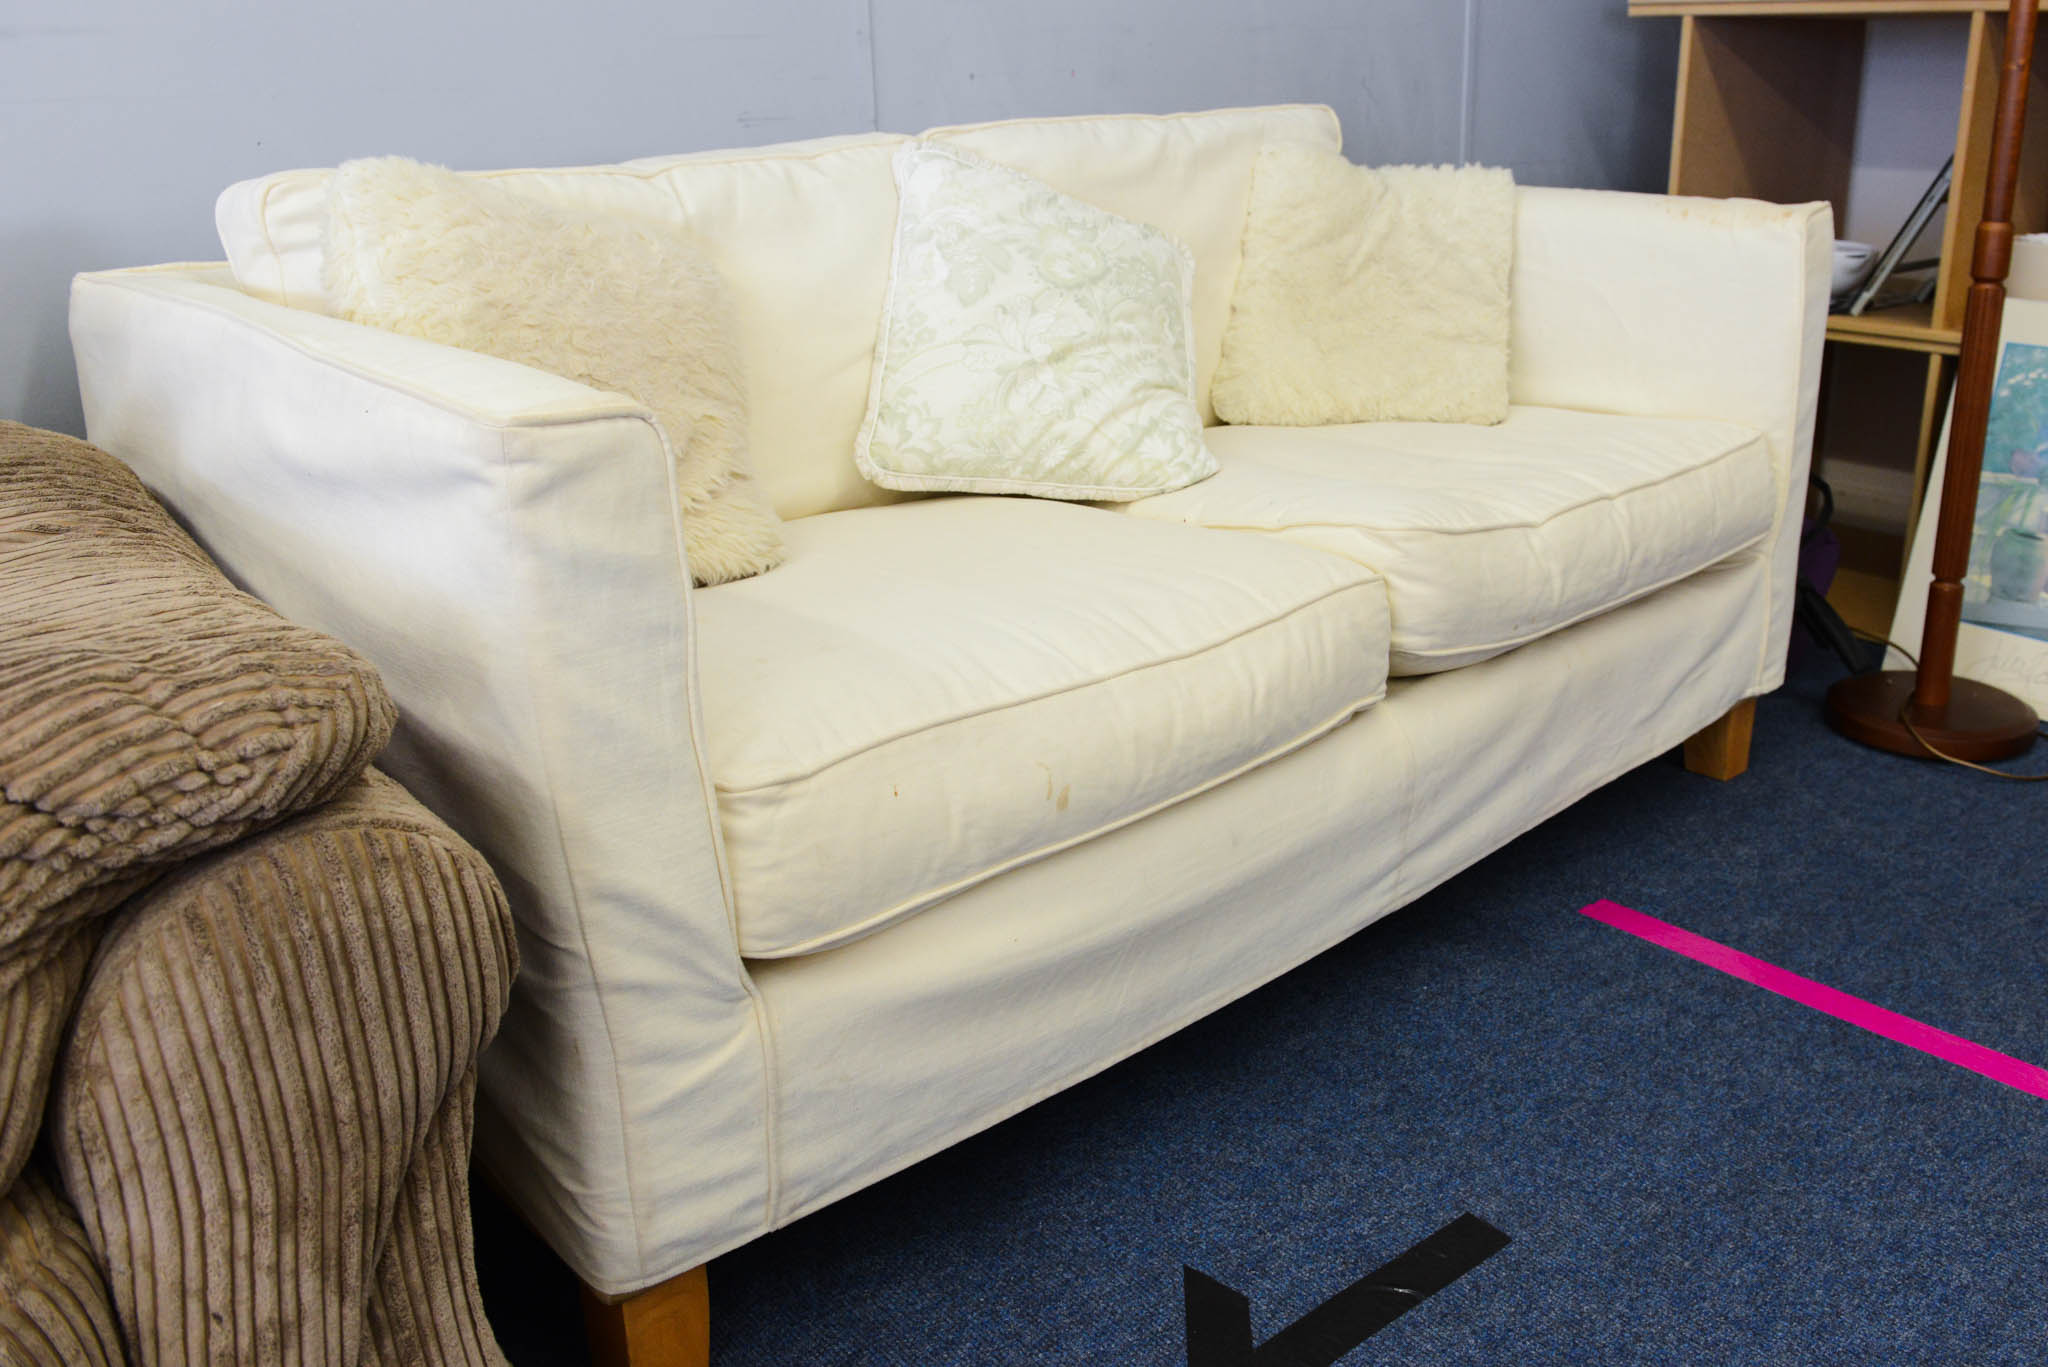 Large two seater sofa with removable covers in off white. Easy to launder or dye to change colour